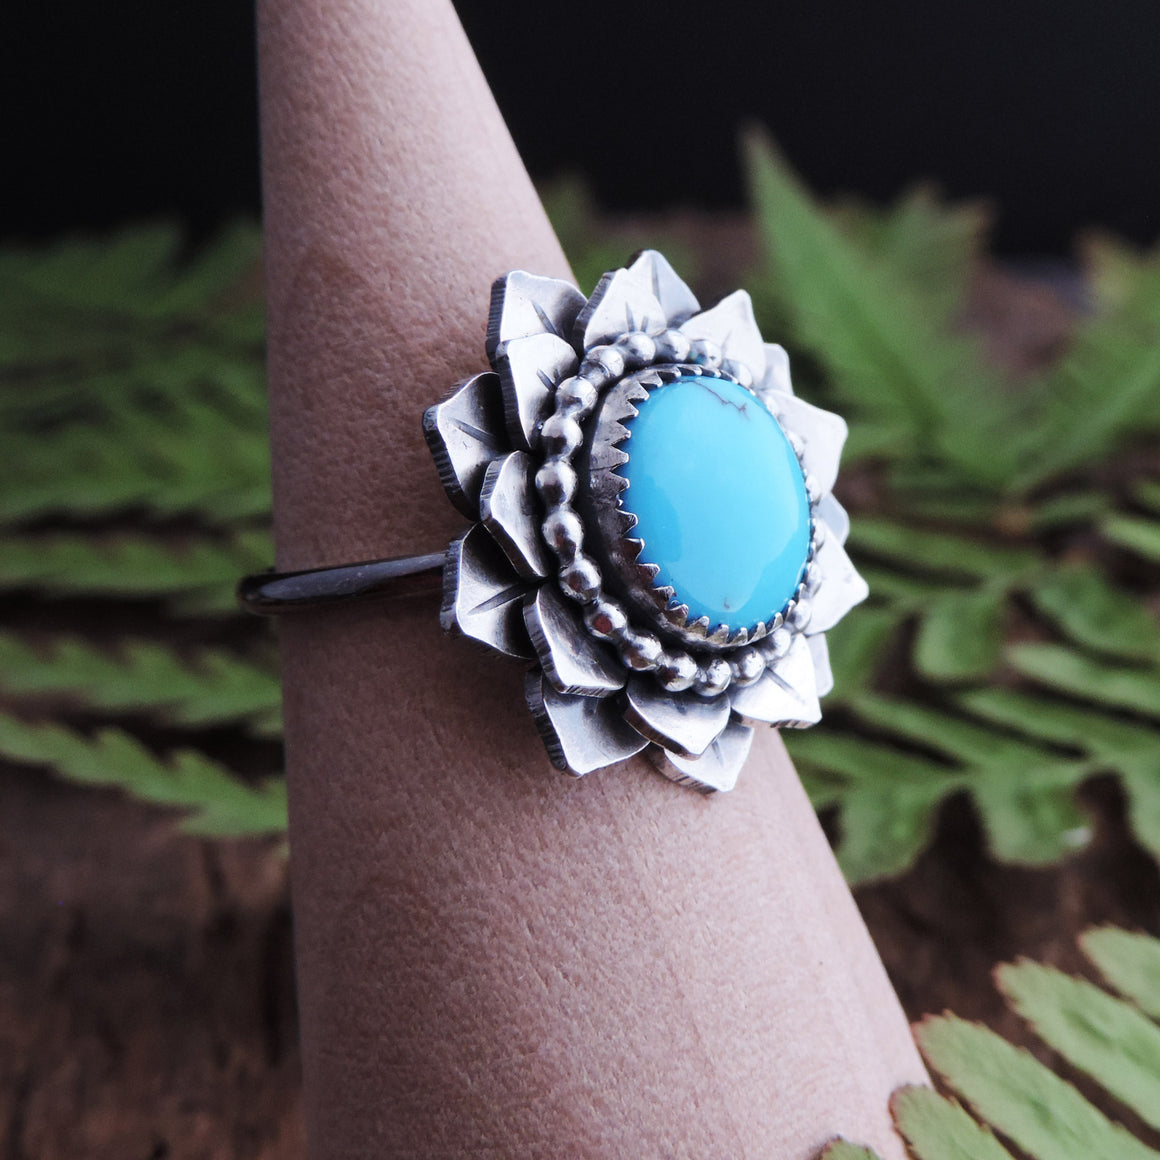 Flower Ring with Prince Turquoise Center - Size 6.5